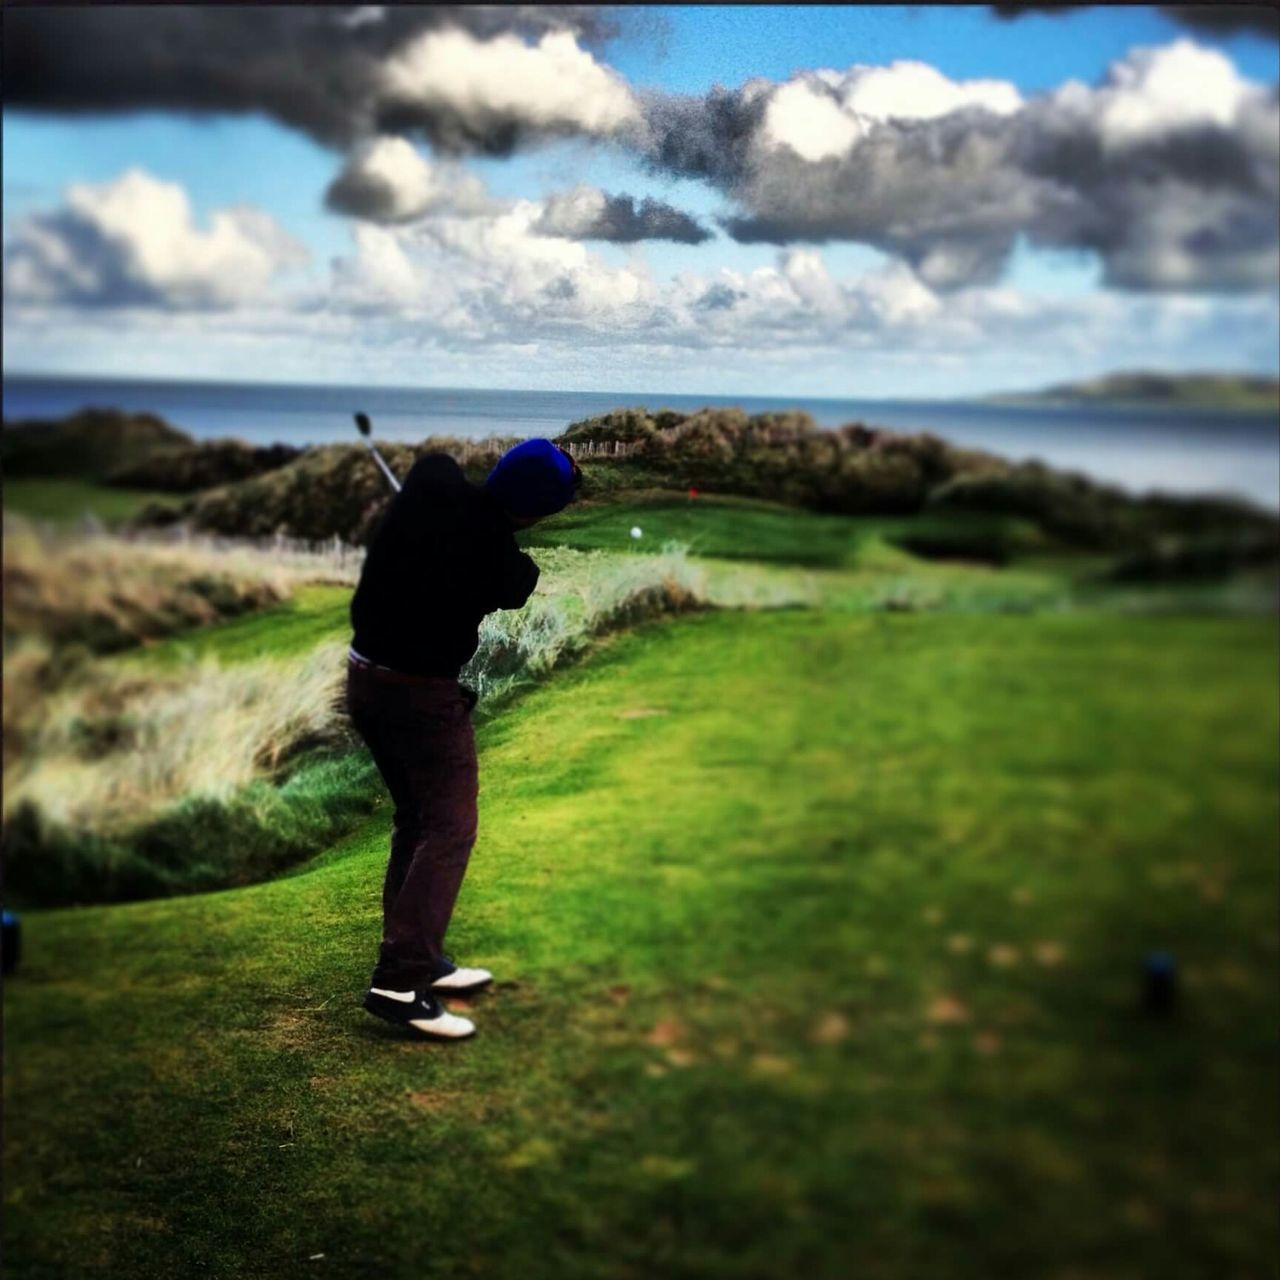 Irland Irlanda Outumn Play Playing Golf Golf Golf Is My Life ⛳️ Golfball Golfcourse Par Golf Green Green Golf Sea View